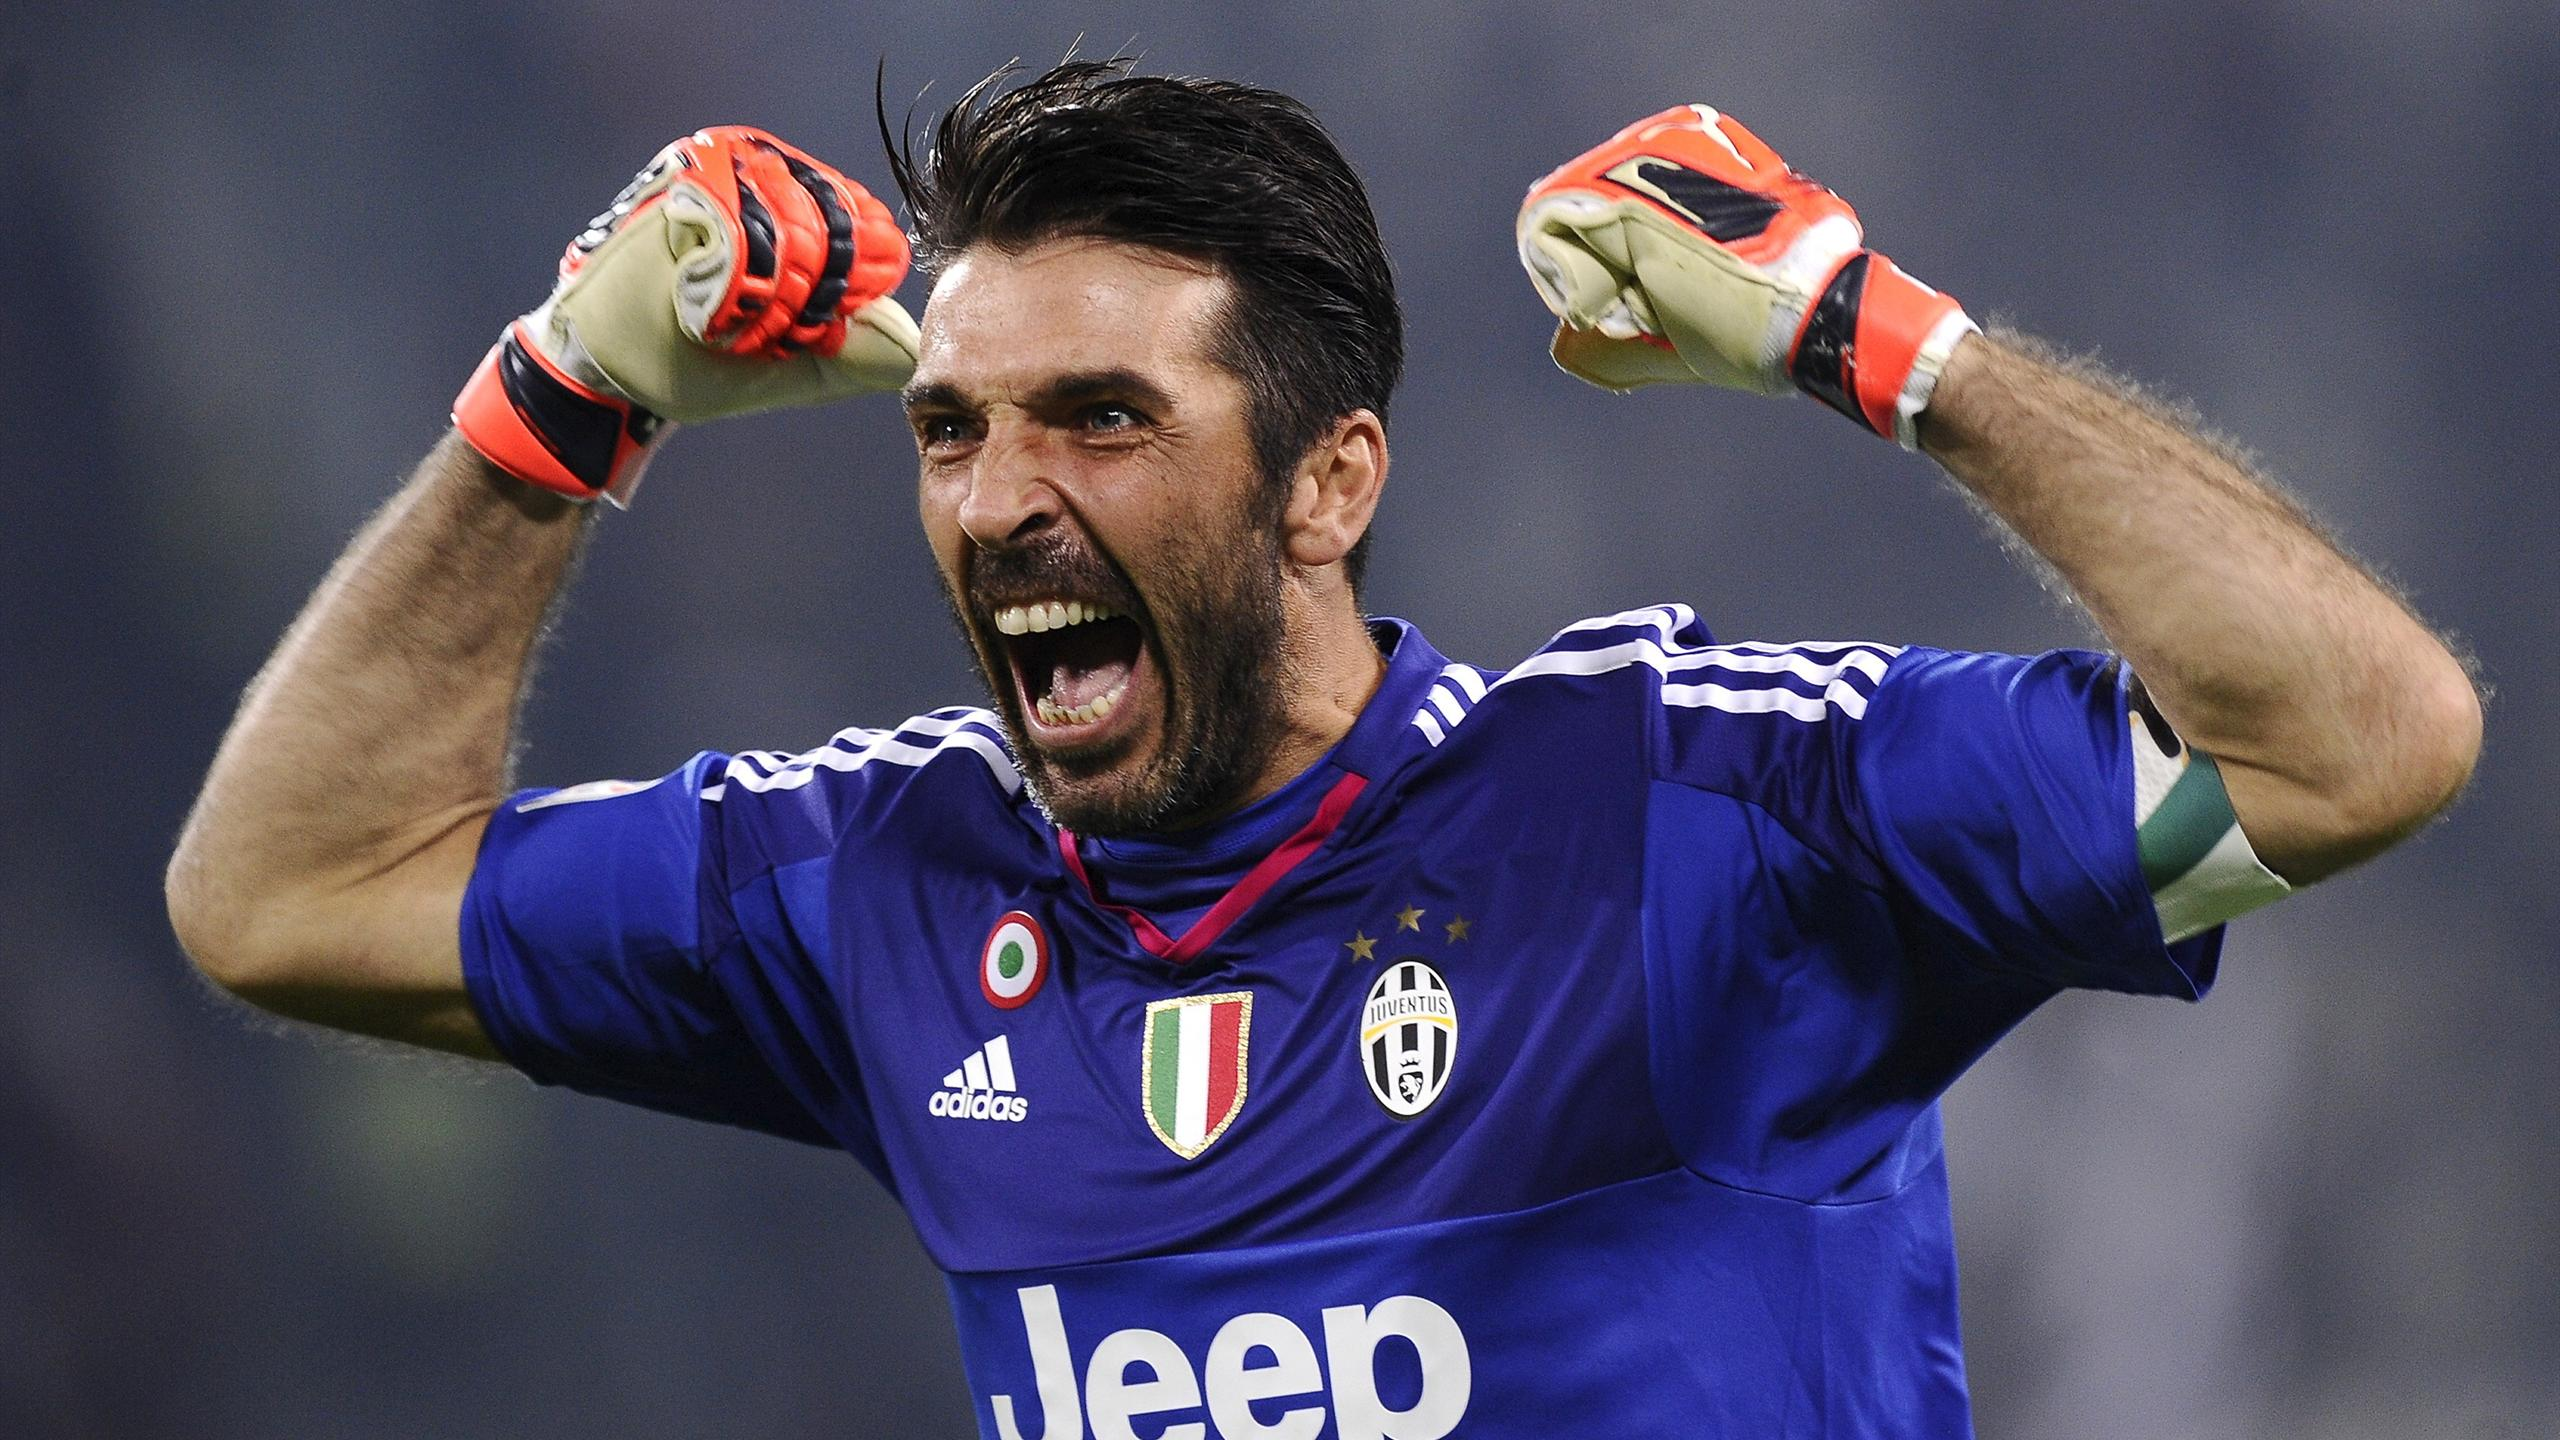 Juventus goalkeeper Gianluigi Buffon celebrates going 973 minutes without conceding in Serie A